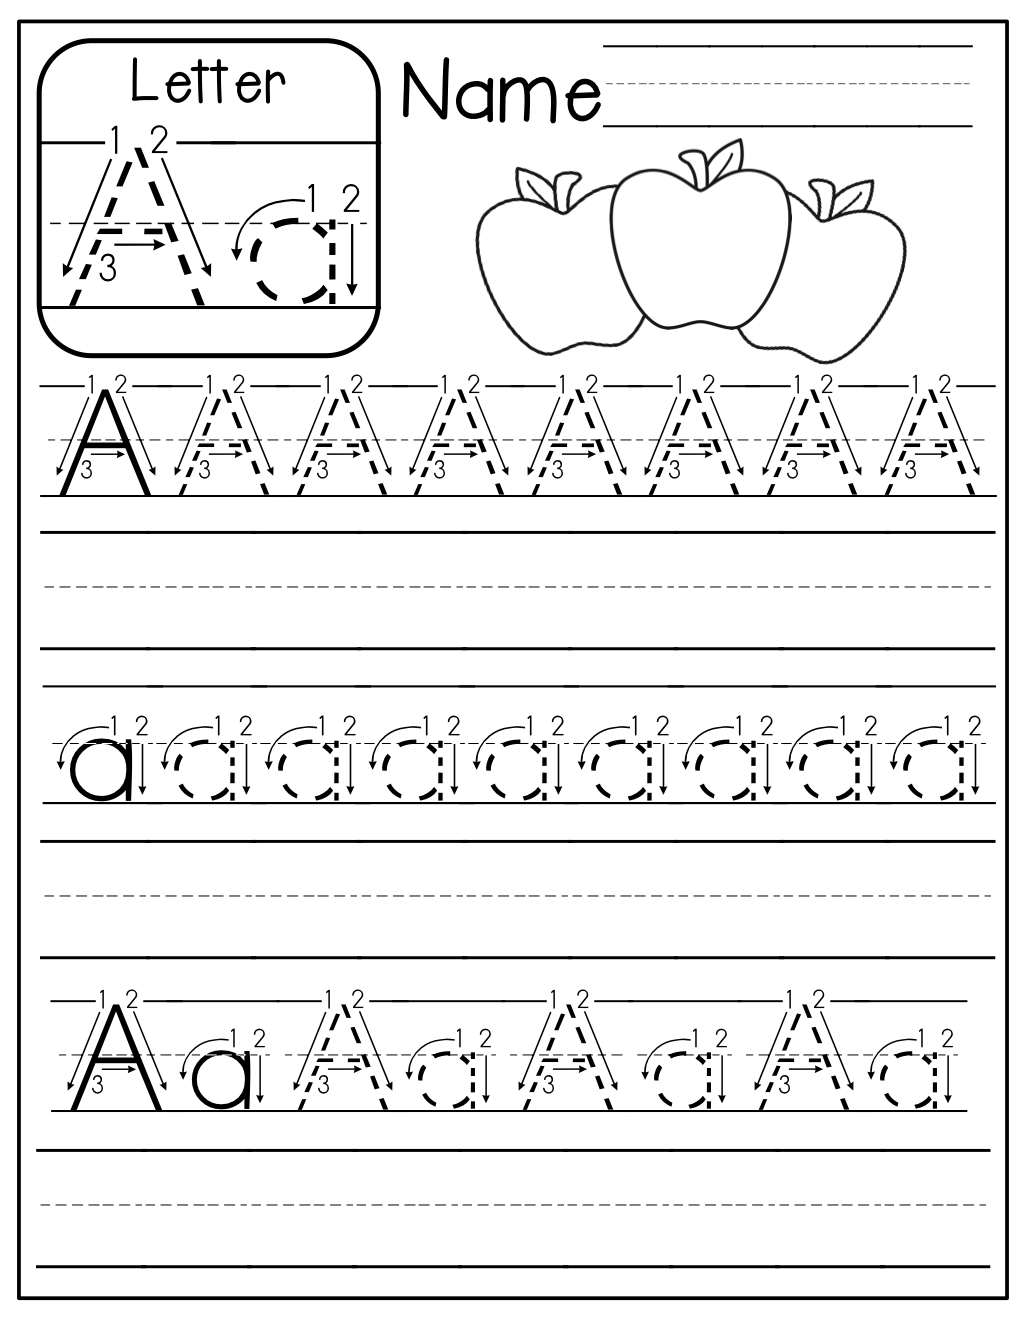 Free…free!! A-Z Handwriting Pages! Just Print Them Out, Place Them - Free Printable Practice Name Writing Sheets